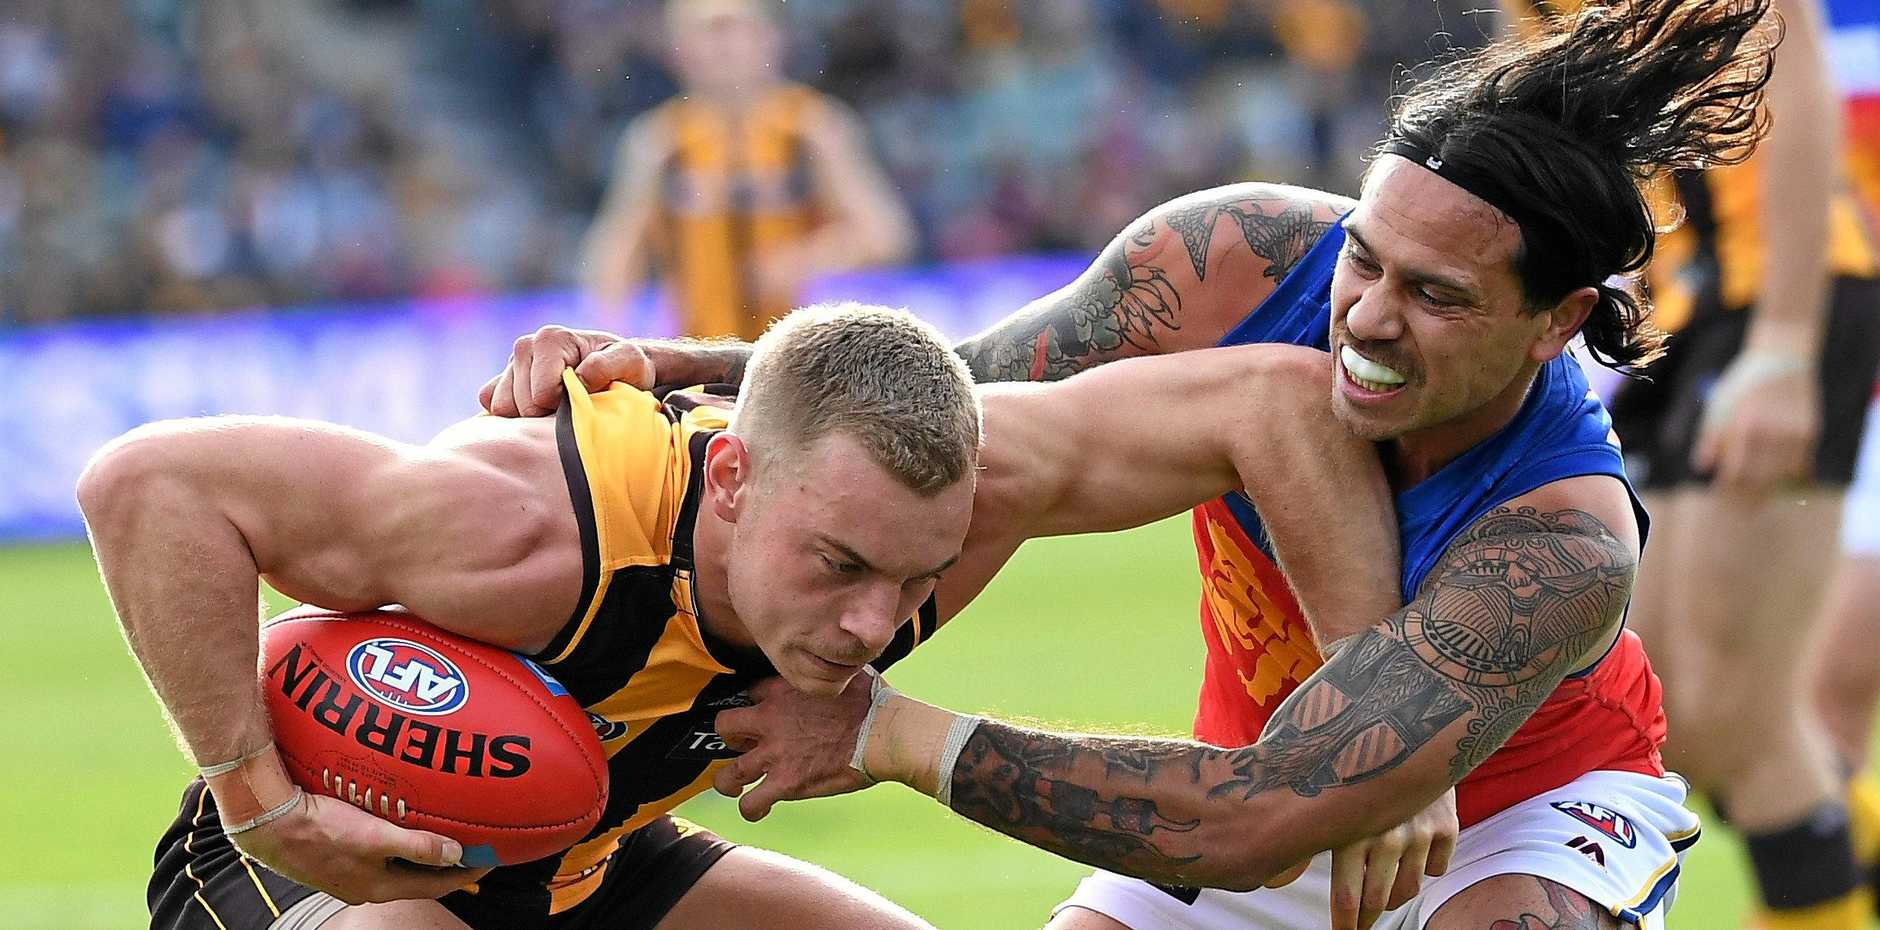 Hawthorn's James Worpel tries to escape the clutches of Brisbane's Allen Christensen on Saturday at the University of Tasmania Stadium. Picture: Julian Smith/AAP